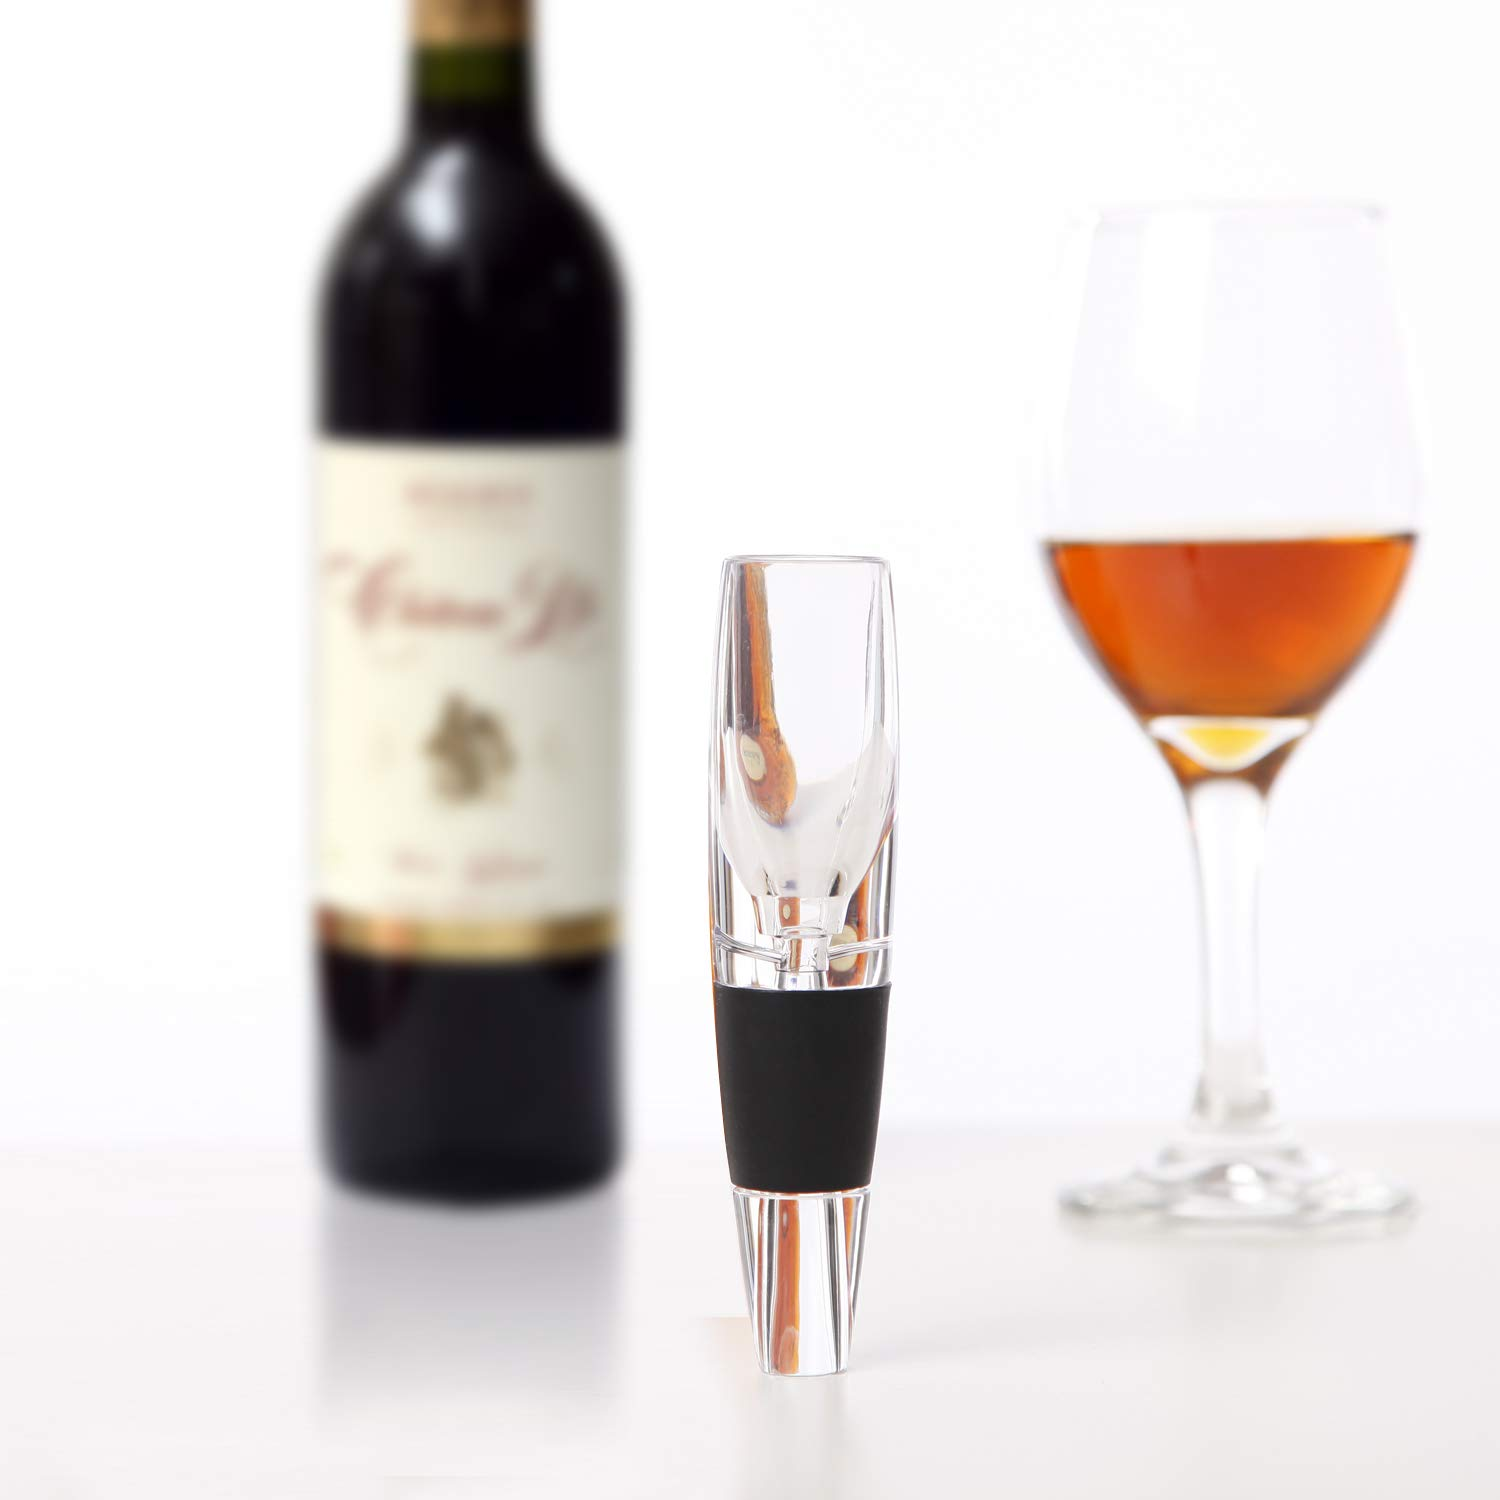 YouYah Mini Wine Aerator Wine Decanter- Red Wine Pourer, Wine Gift by NEW PACIFIC YOUYAH (Image #5)